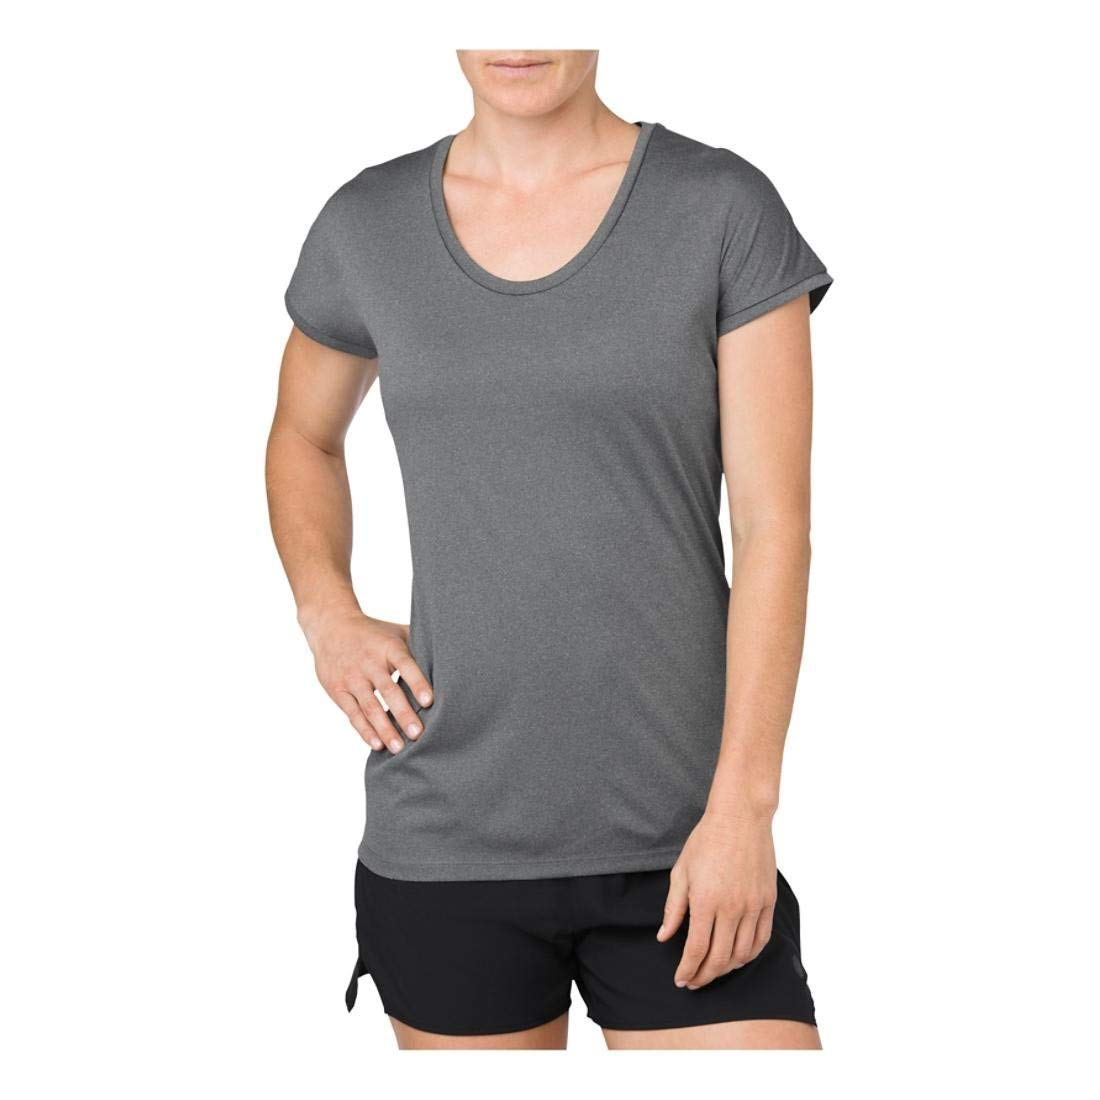 ASICS Cap Sleeve Top, grand, Dark gris Heather